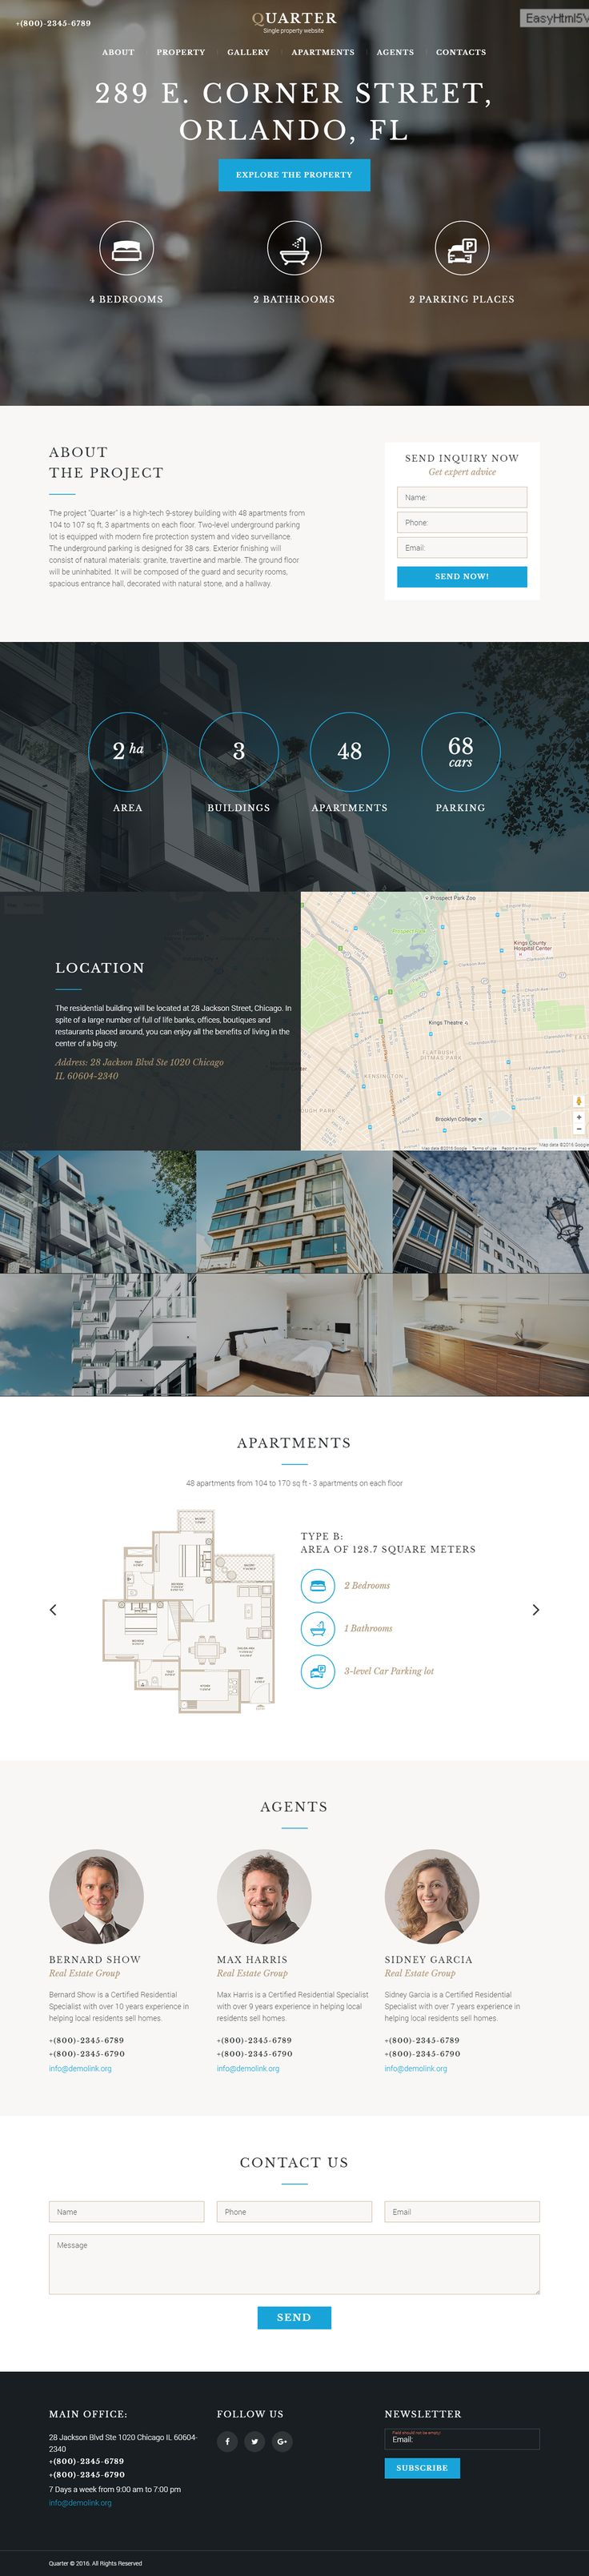 Real Estate Landing Page Template on Behance